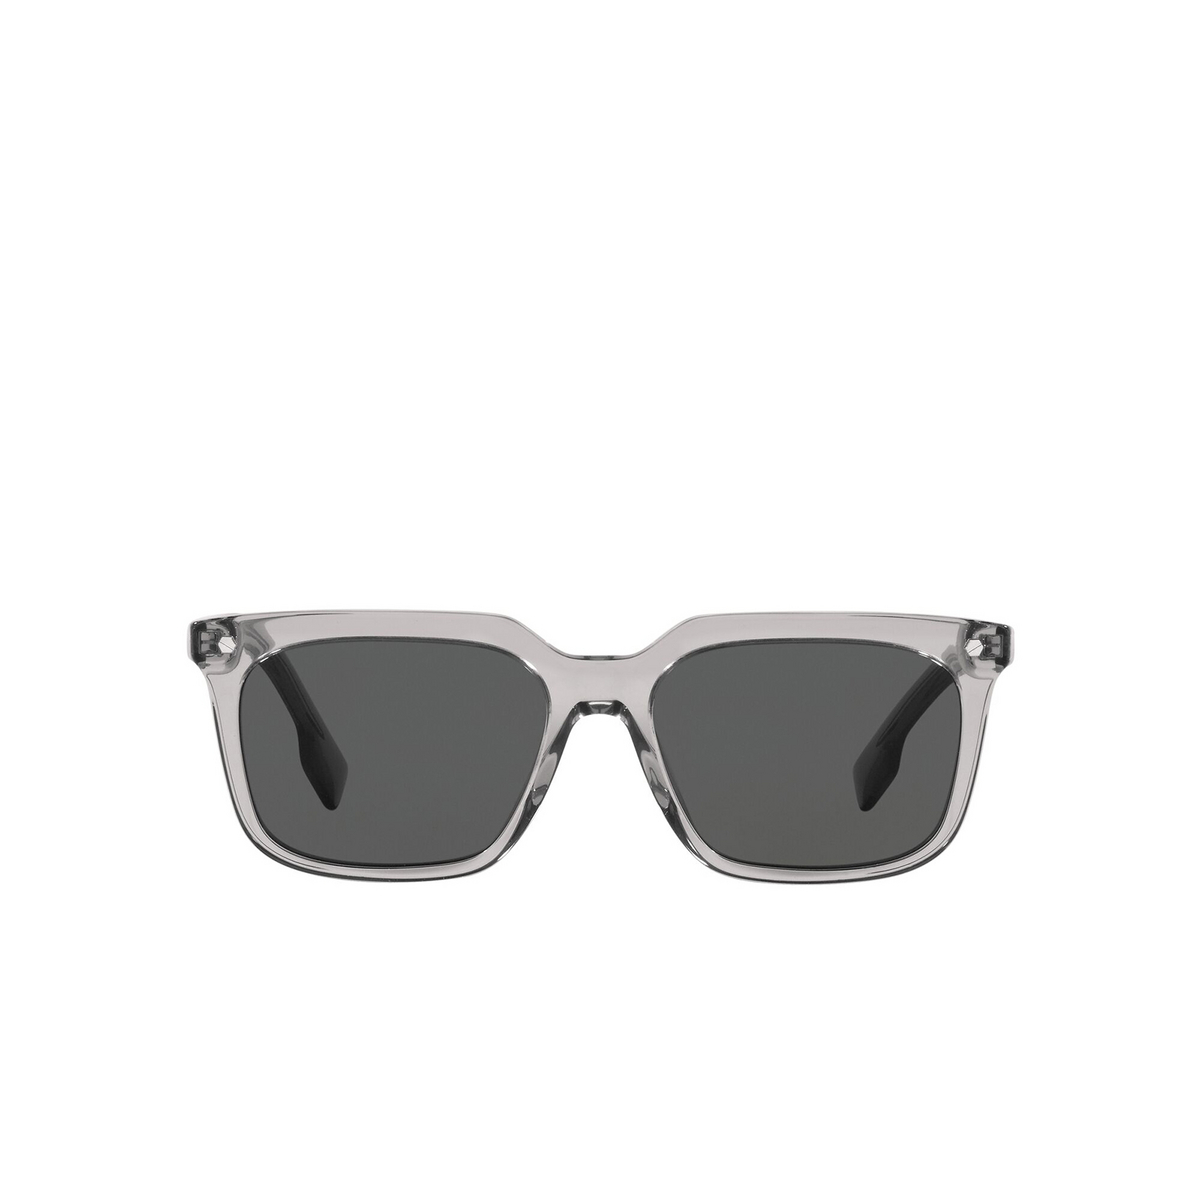 Burberry® Square Sunglasses: Carnaby BE4337 color Grey 302887 - front view.